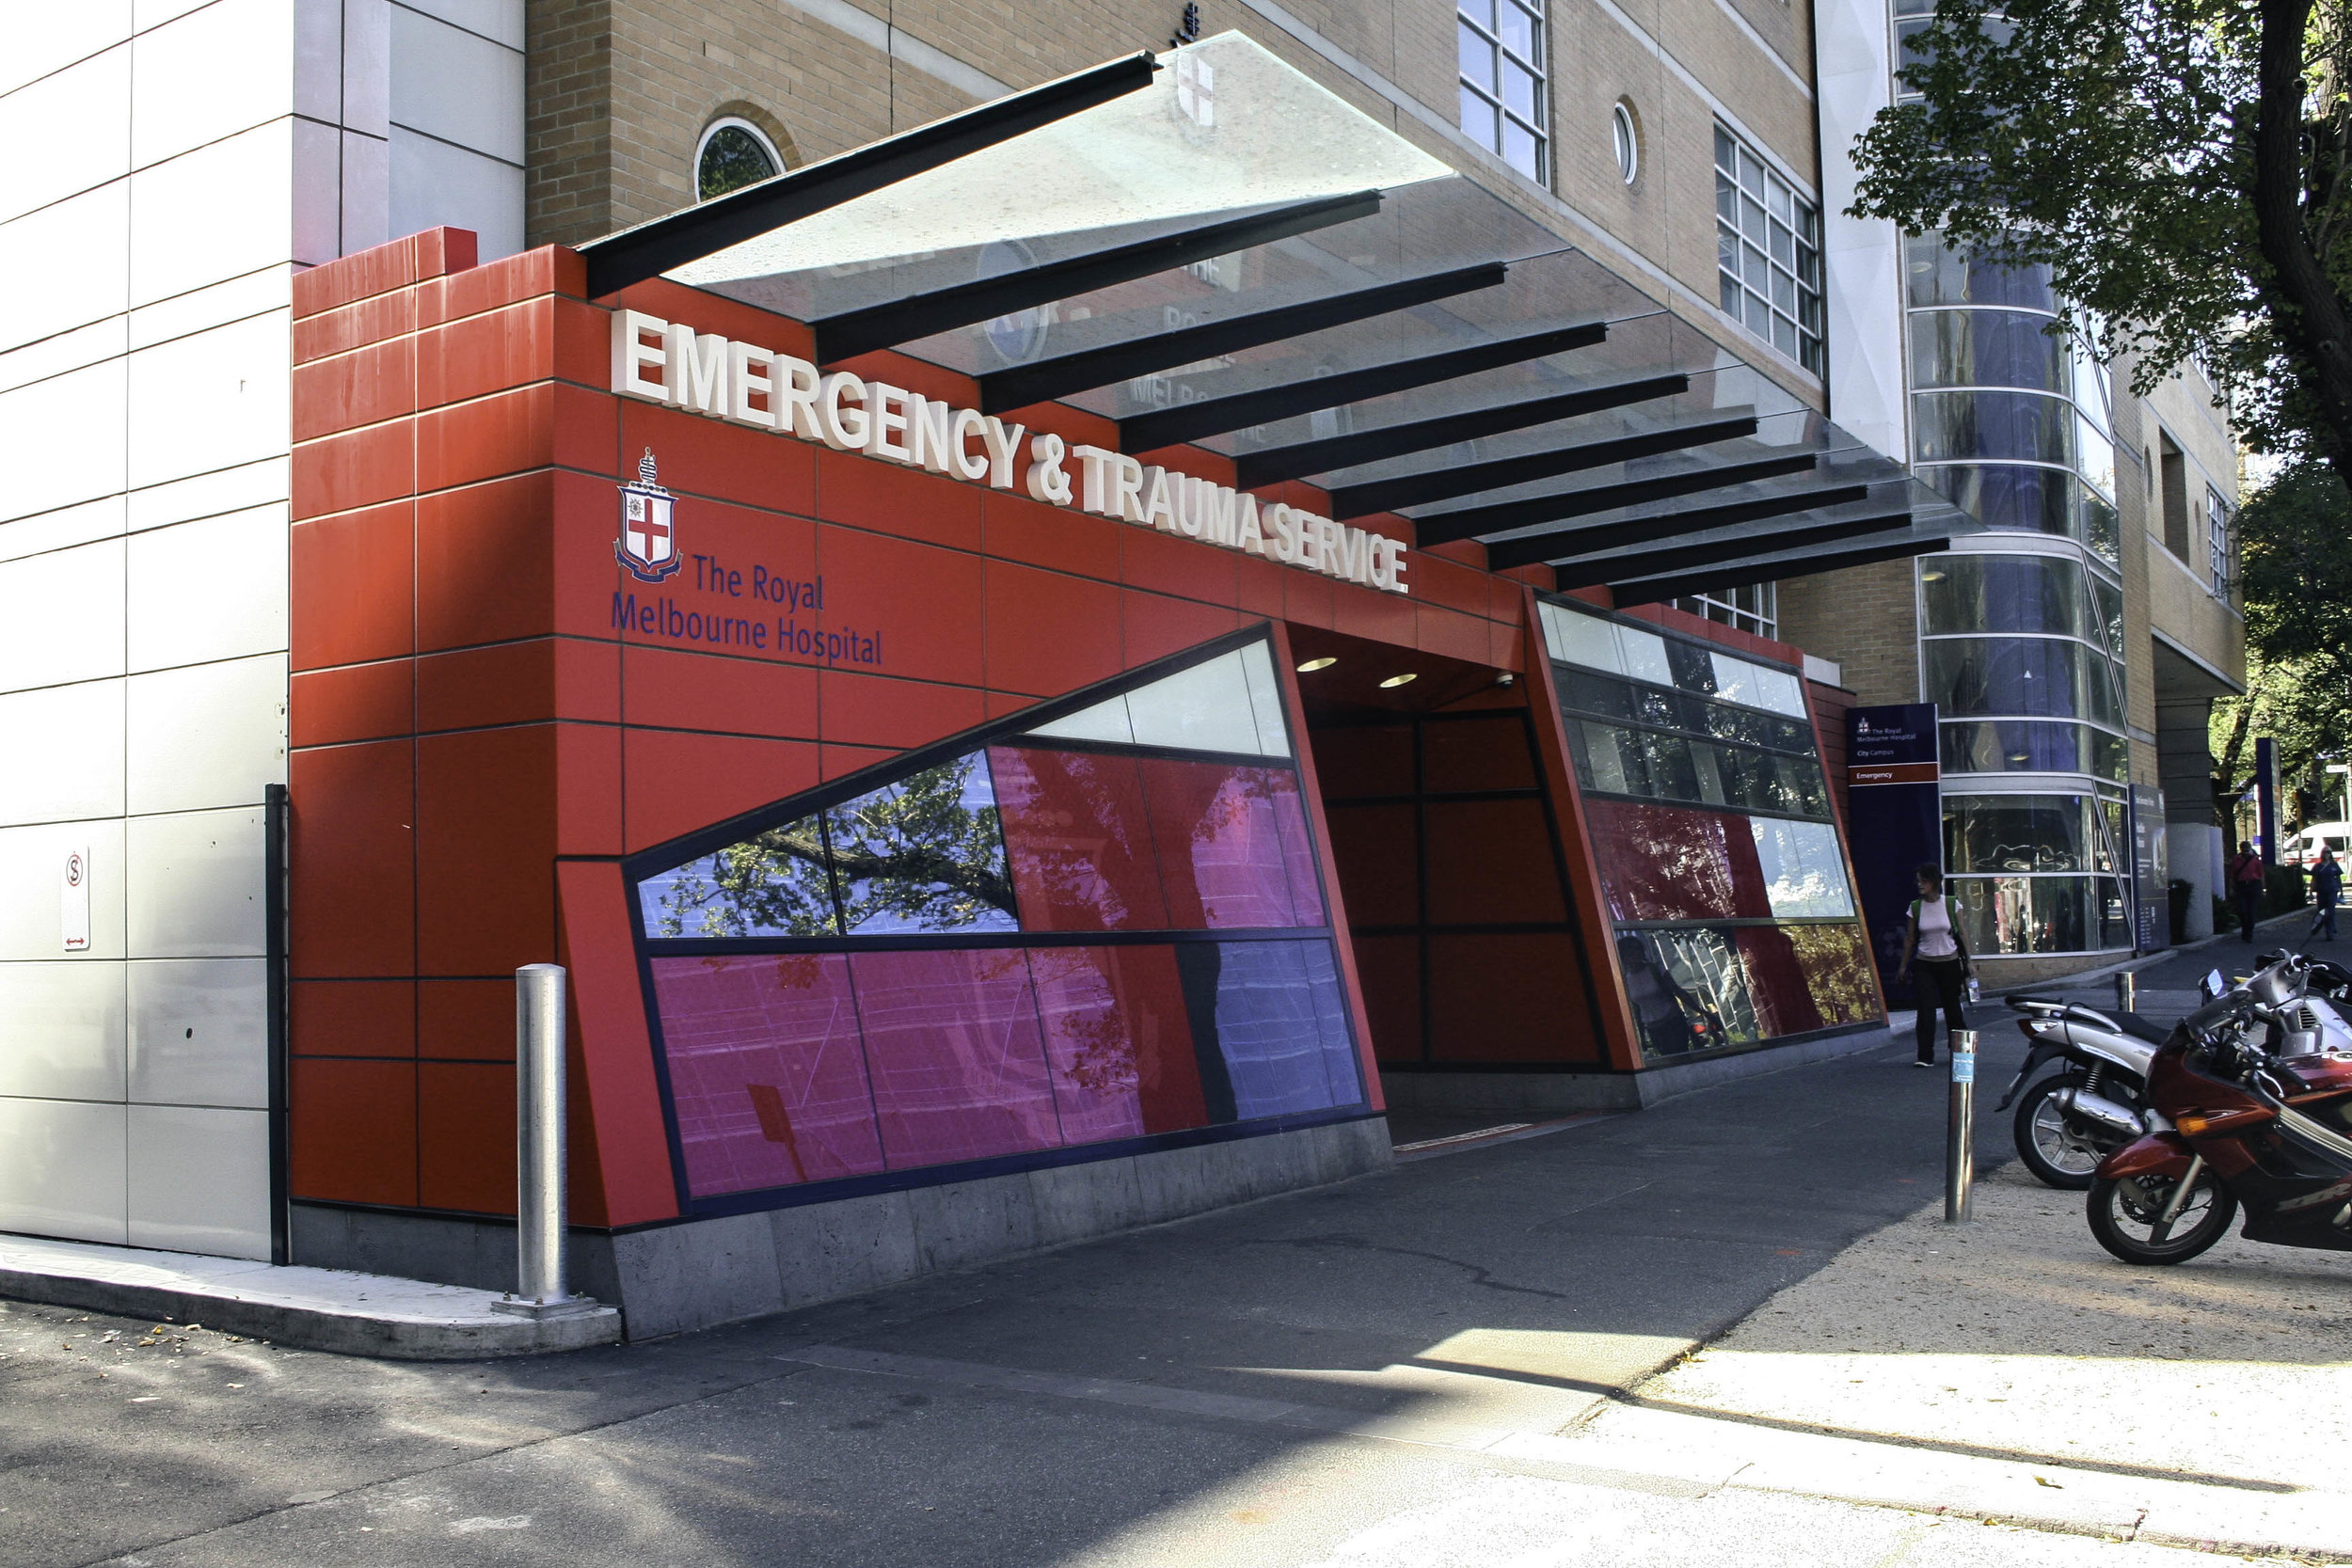 Emergency Entrance - Royal Melbourne Hospital